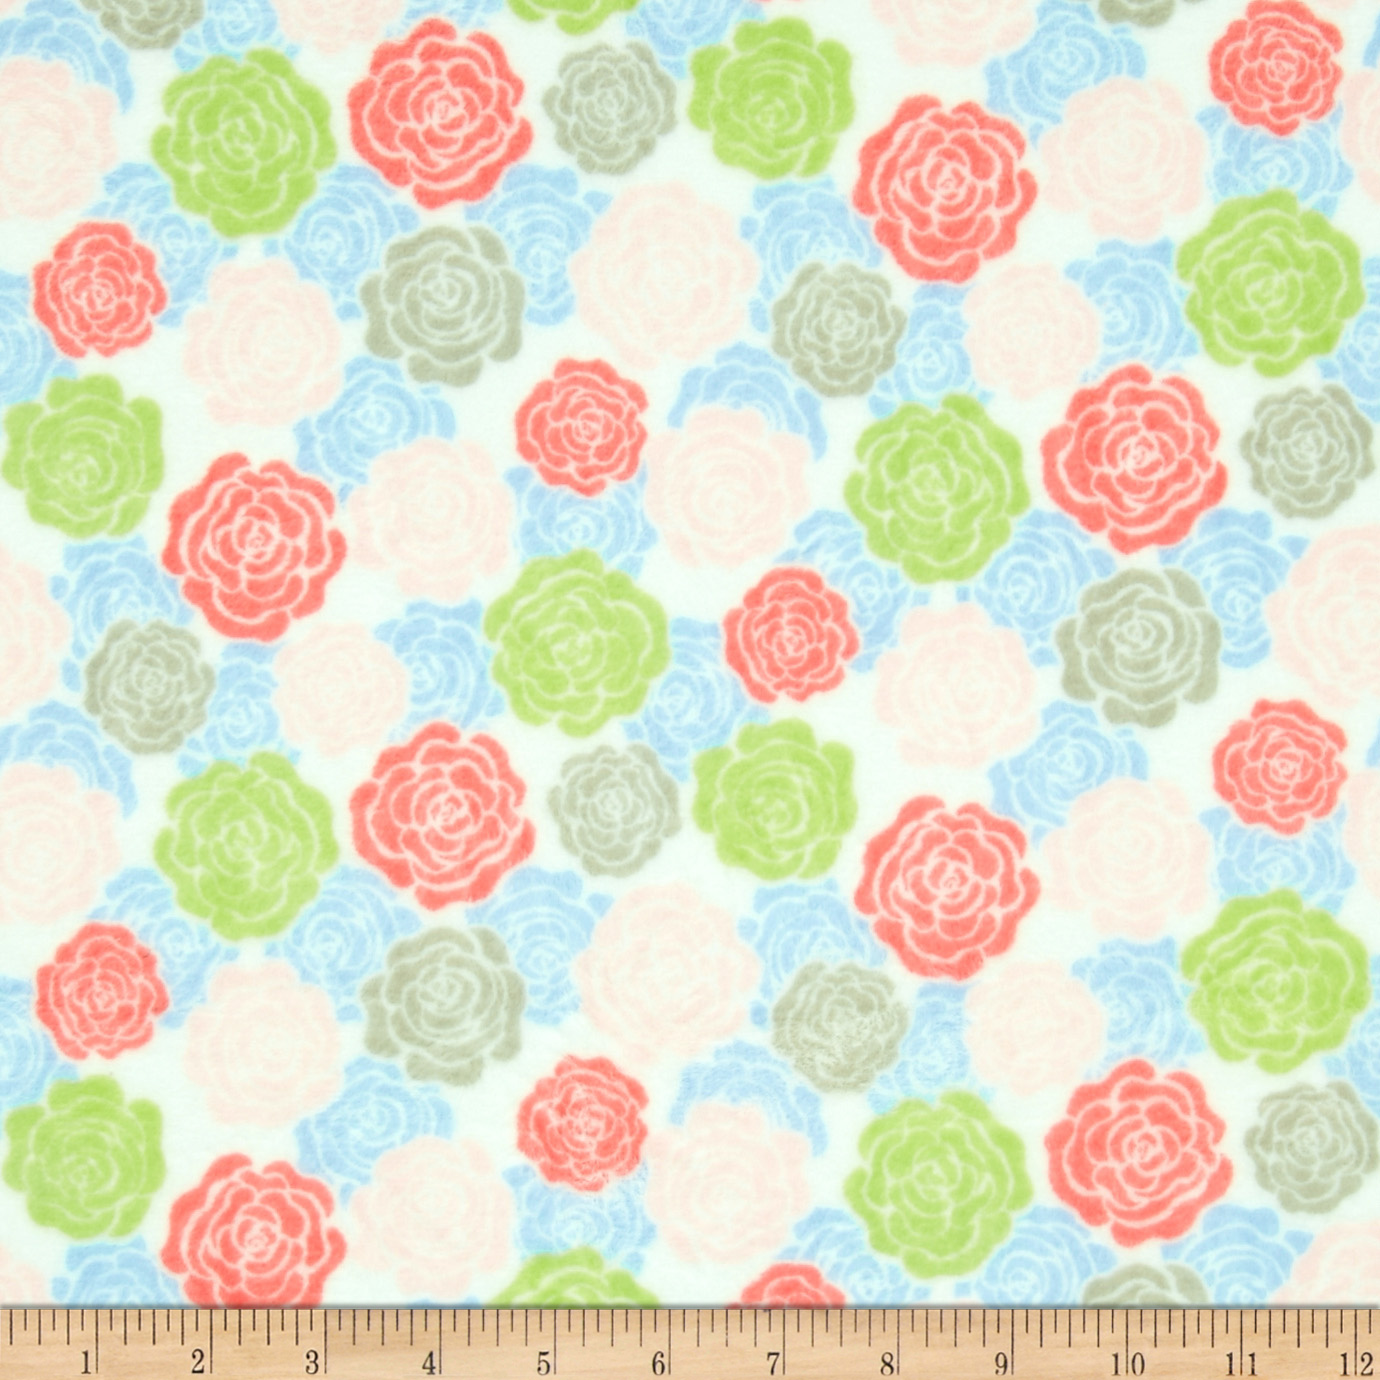 Minky Cuddle Romance Rose Bloom White Fabric